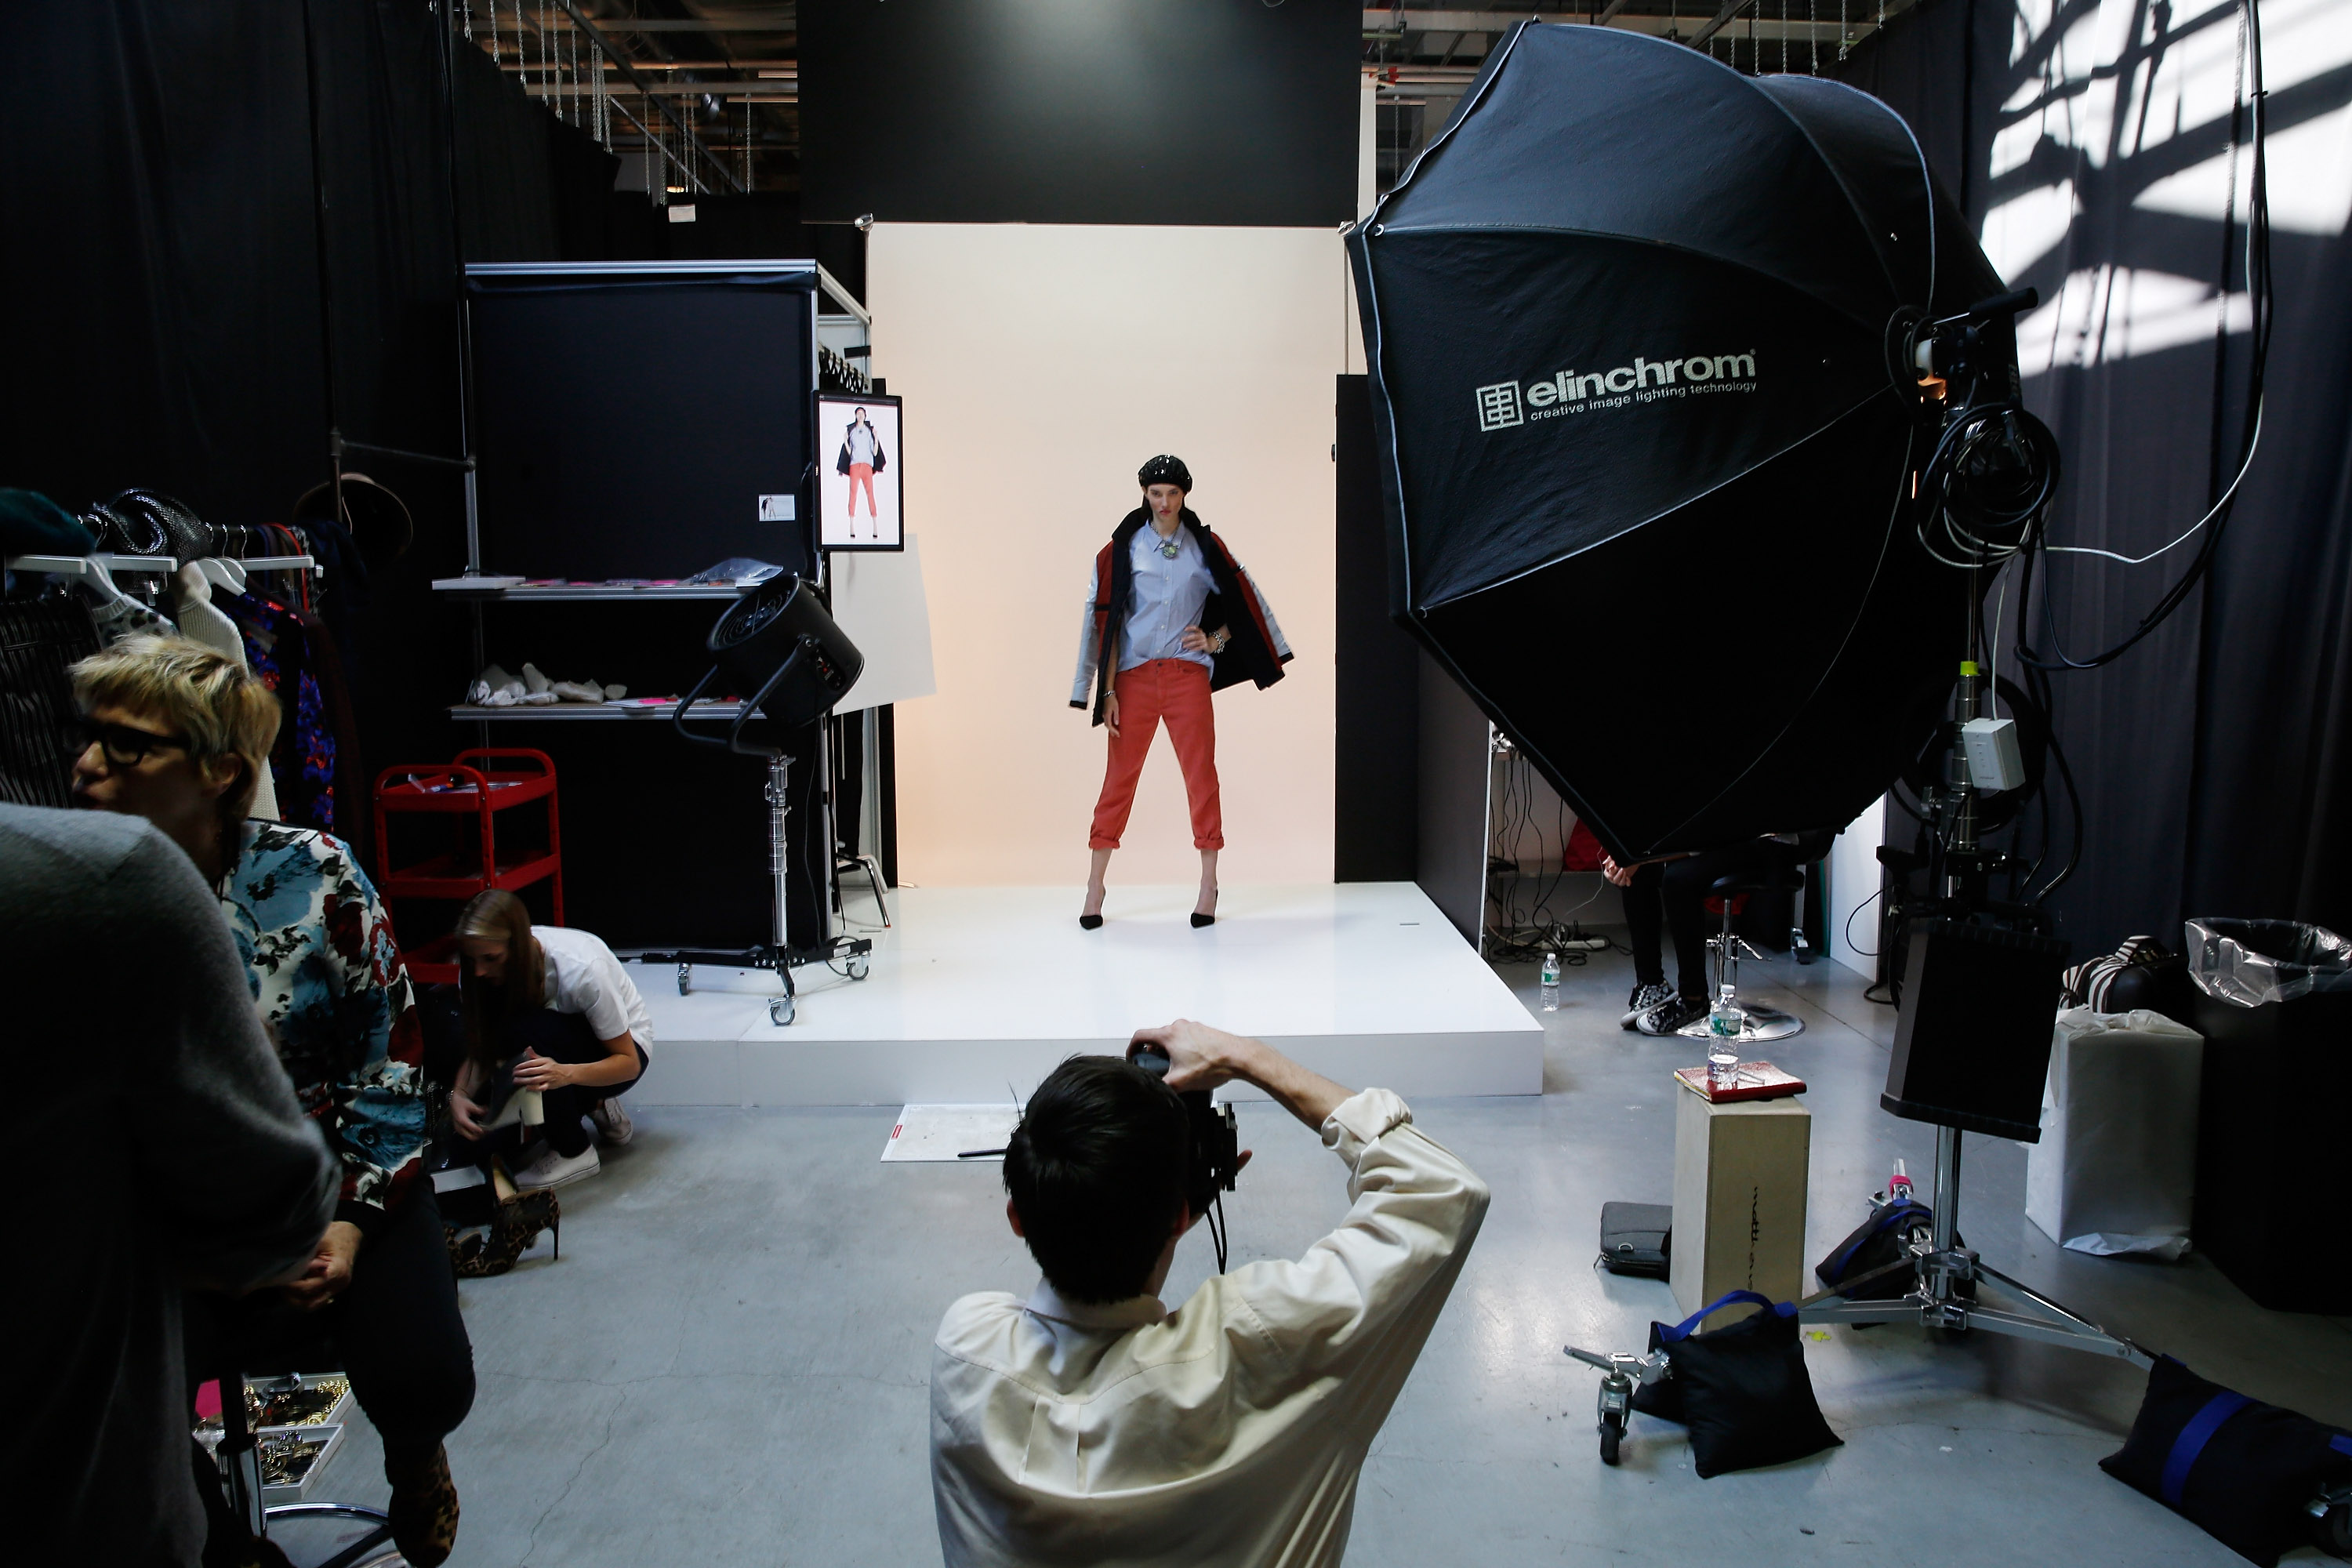 Model being shot in Amazon's Brooklyn photo studio